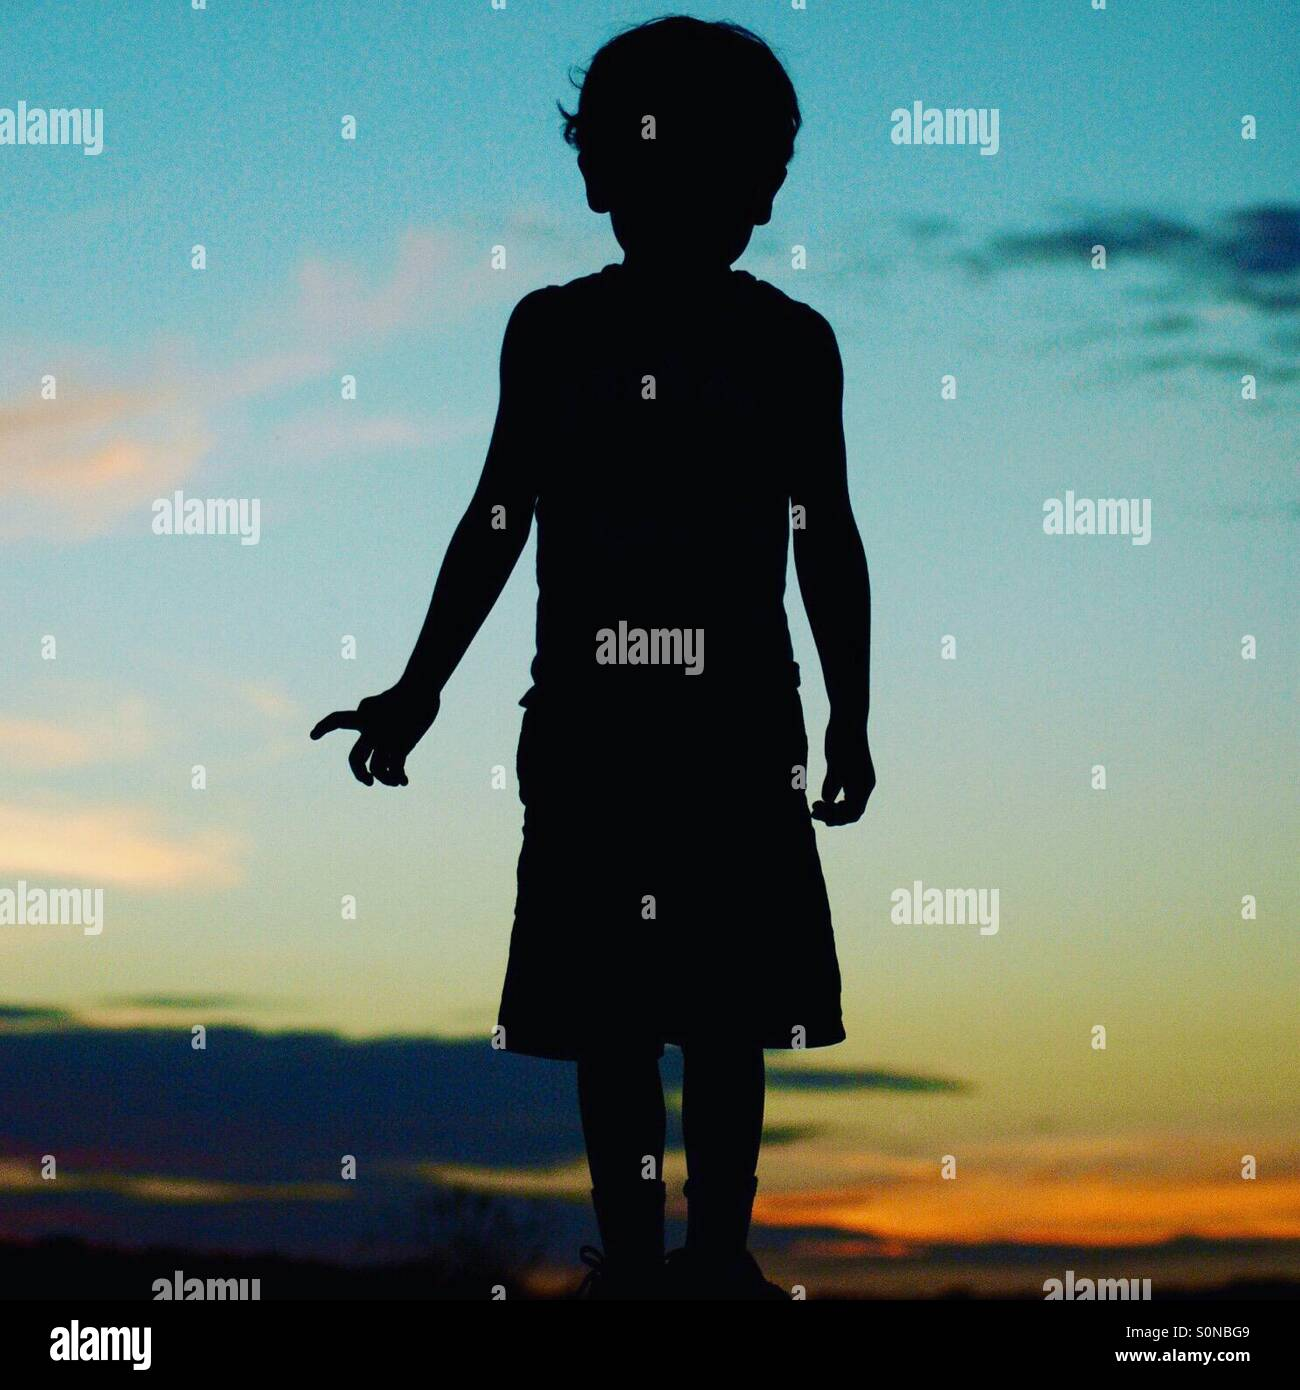 Boy silhouette - Stock Image